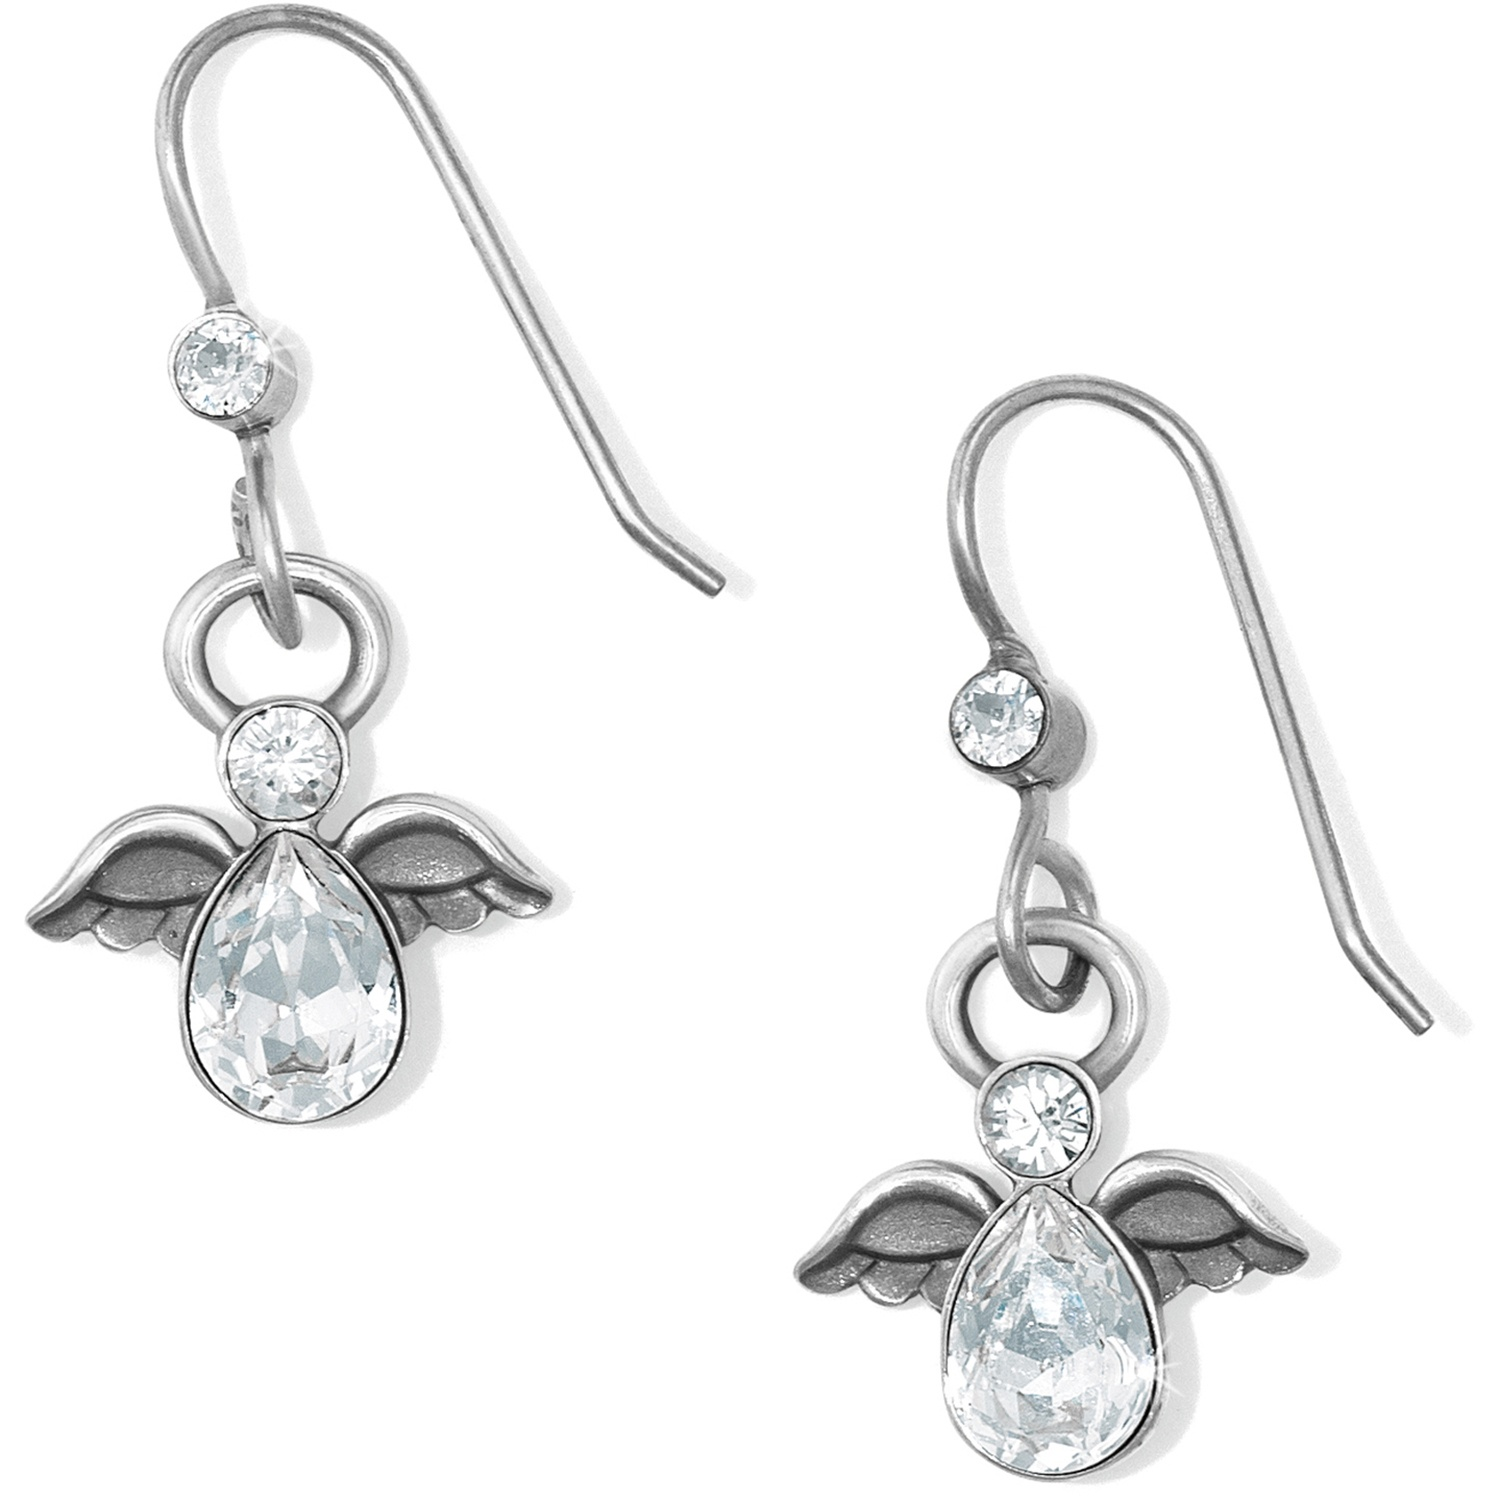 Bright Earrings Diamonds In 18kt White Gold Earrings